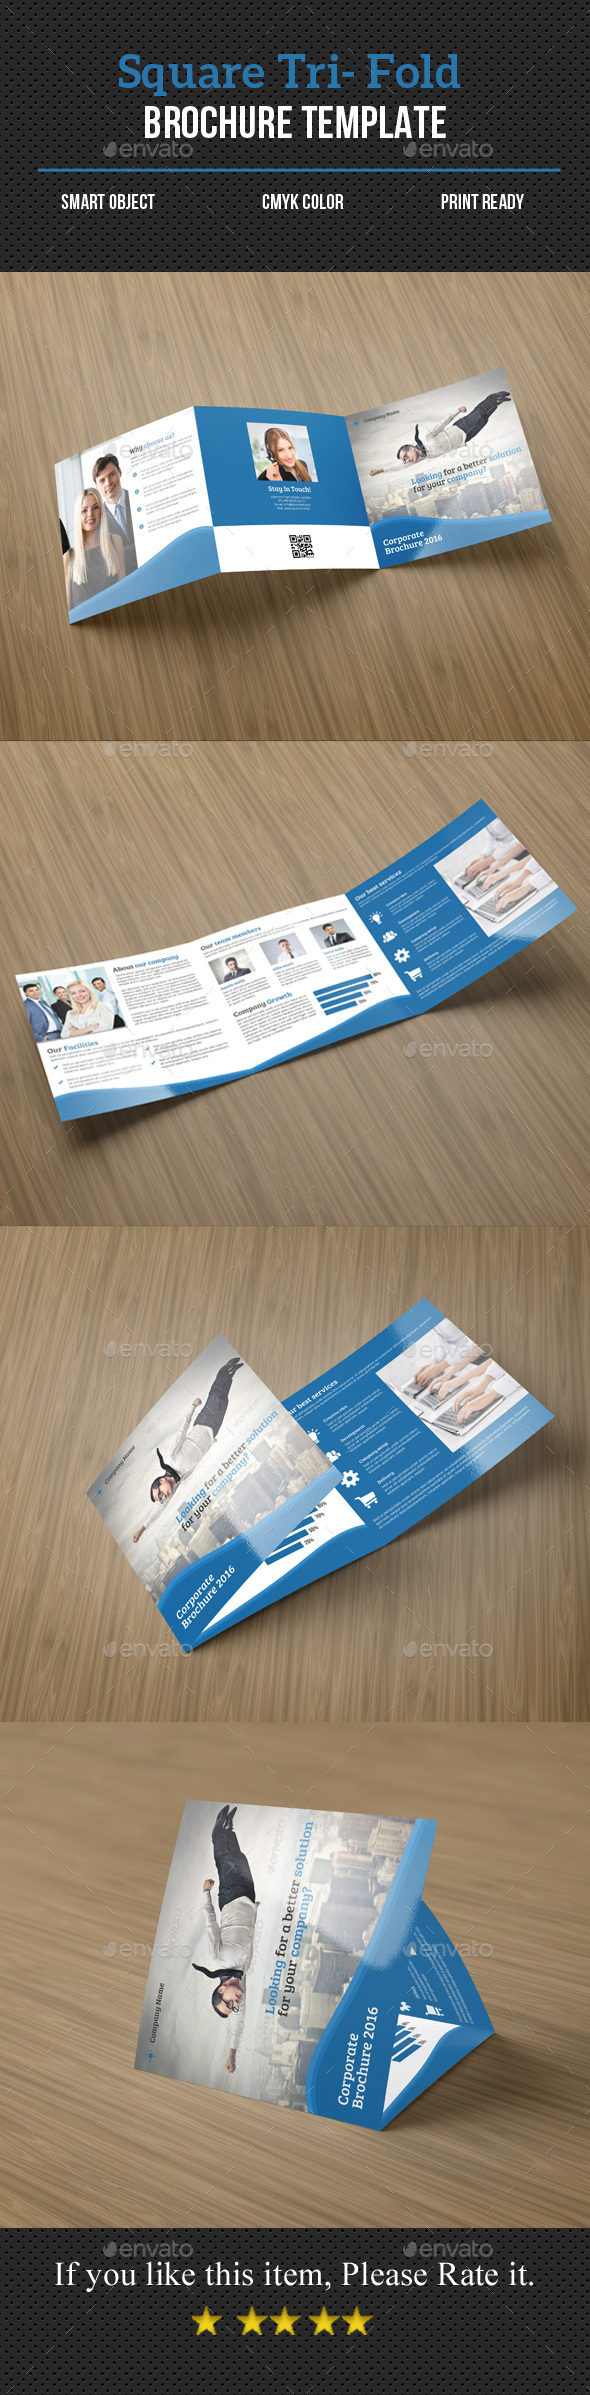 Square Tri-Fold Corporate Brochure - Corporate Brochures